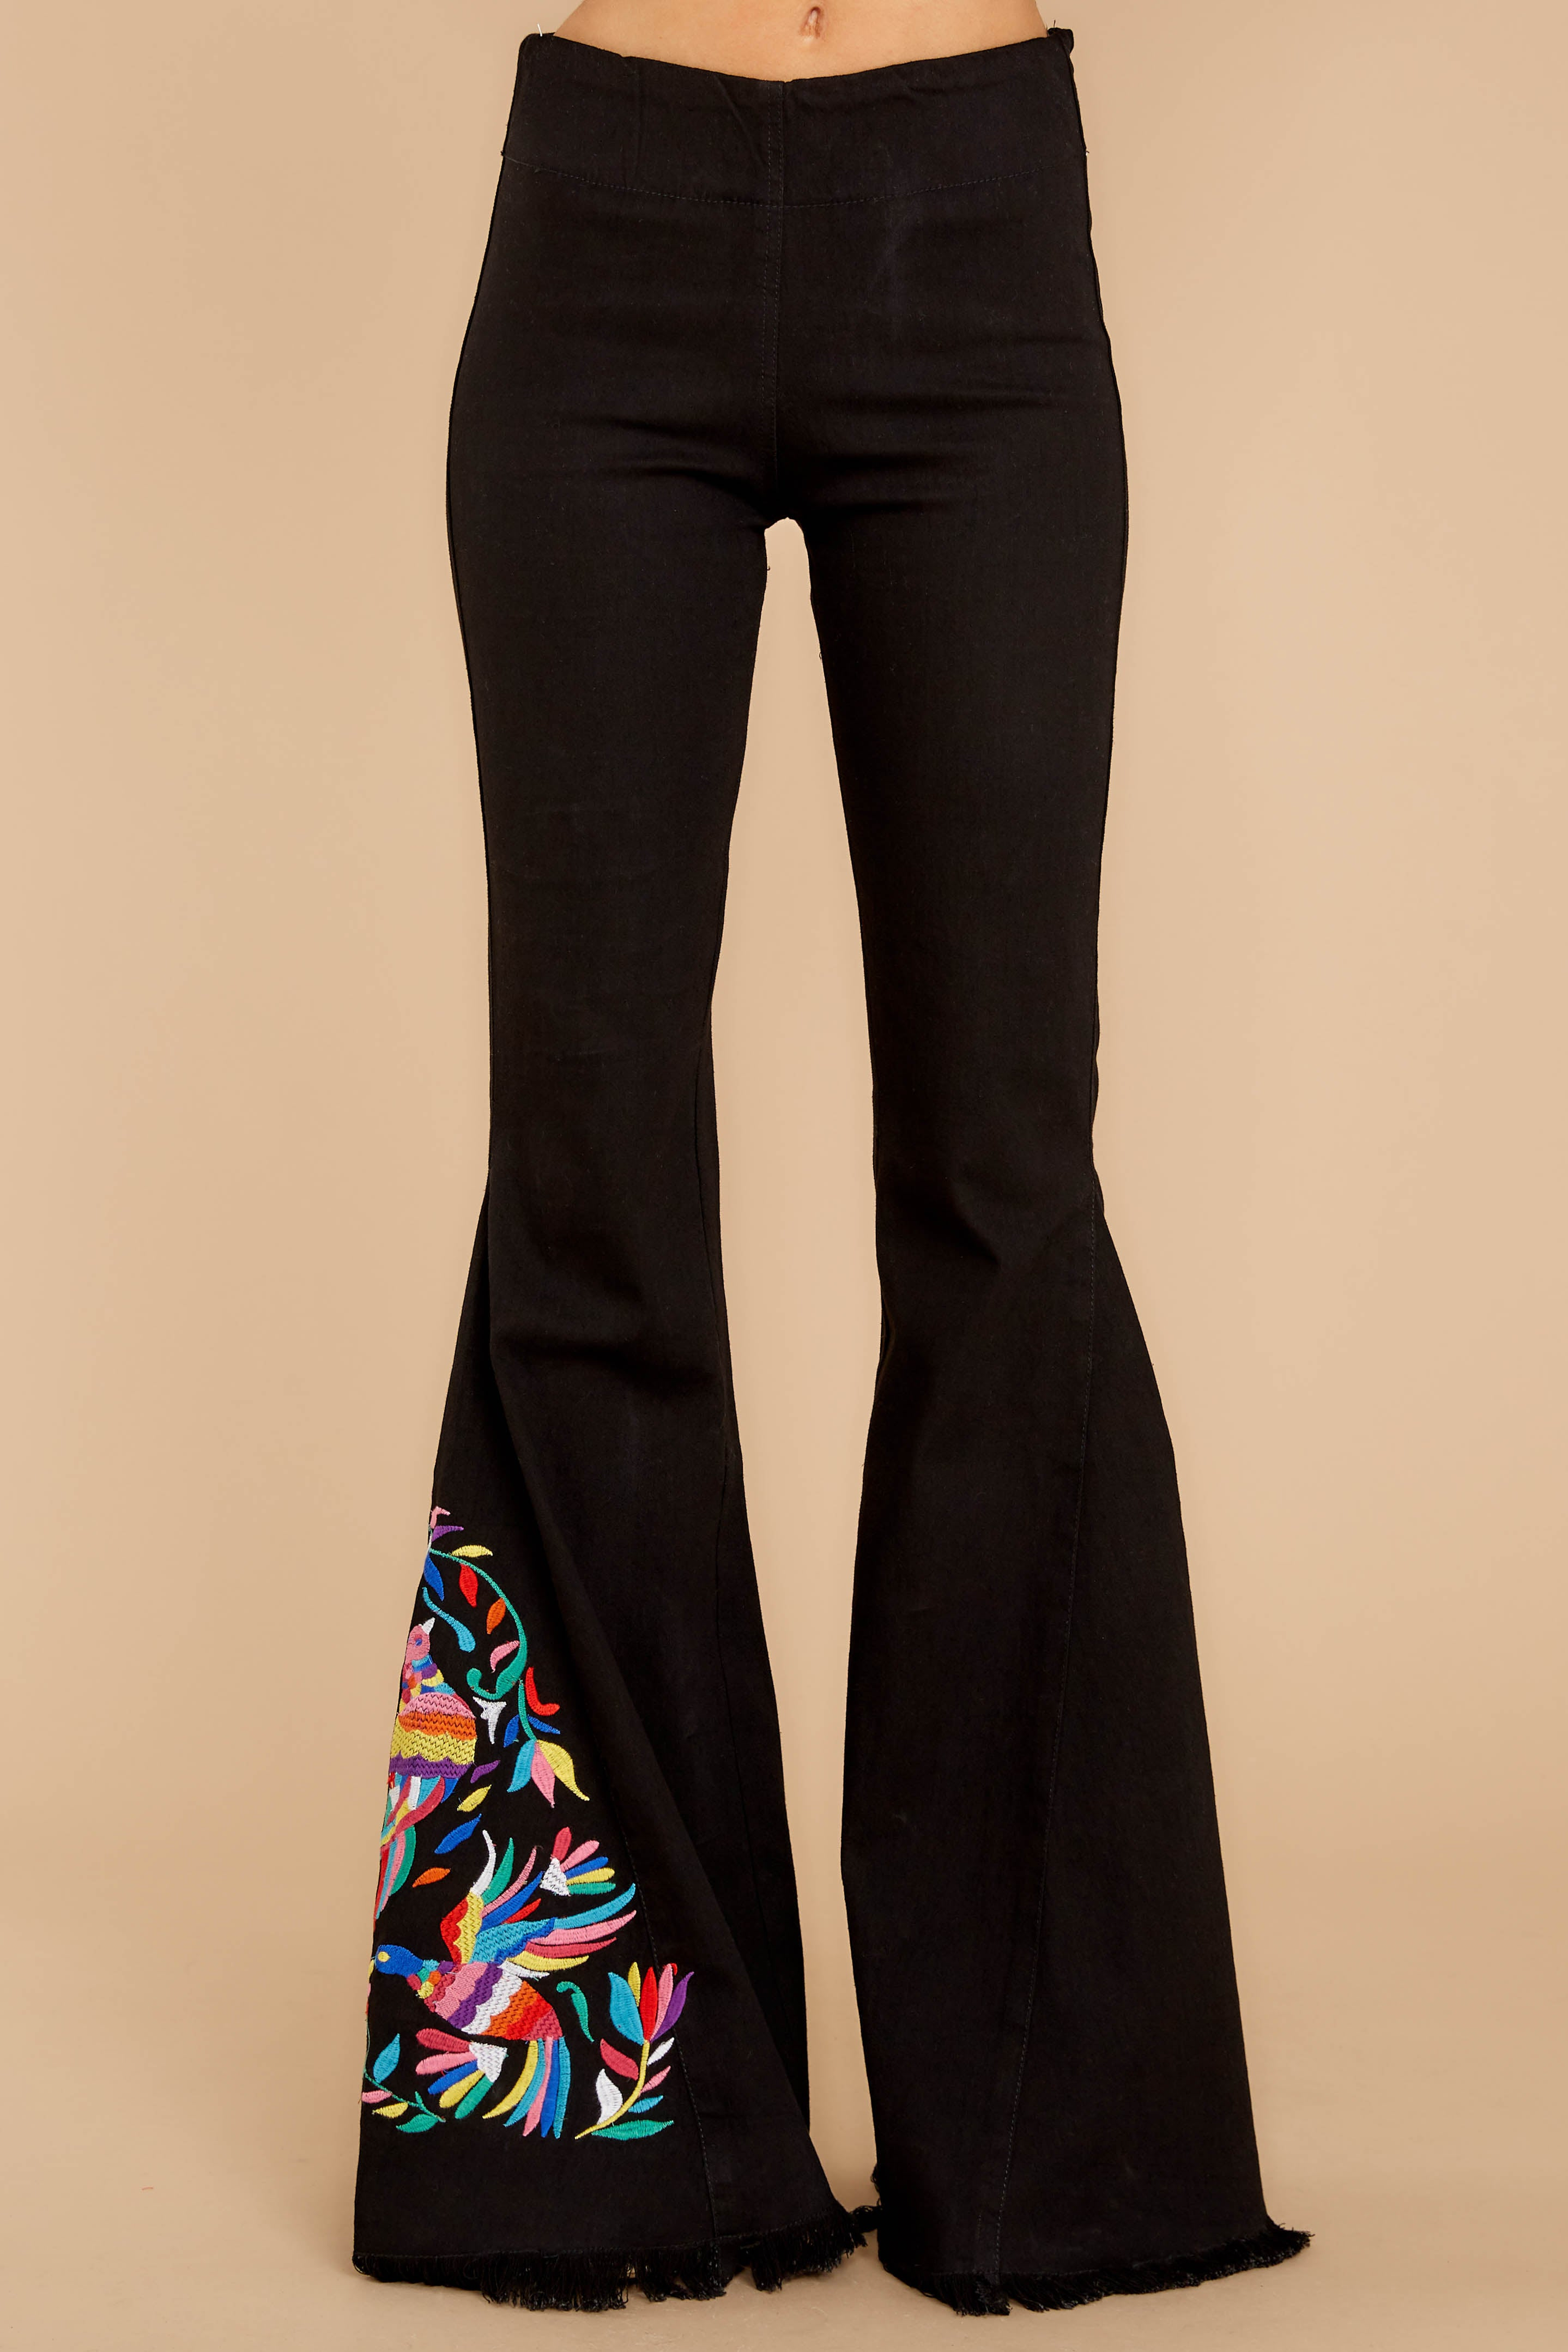 2 Point Of Love Black Embroidered Flare Jeans at reddressboutique.com